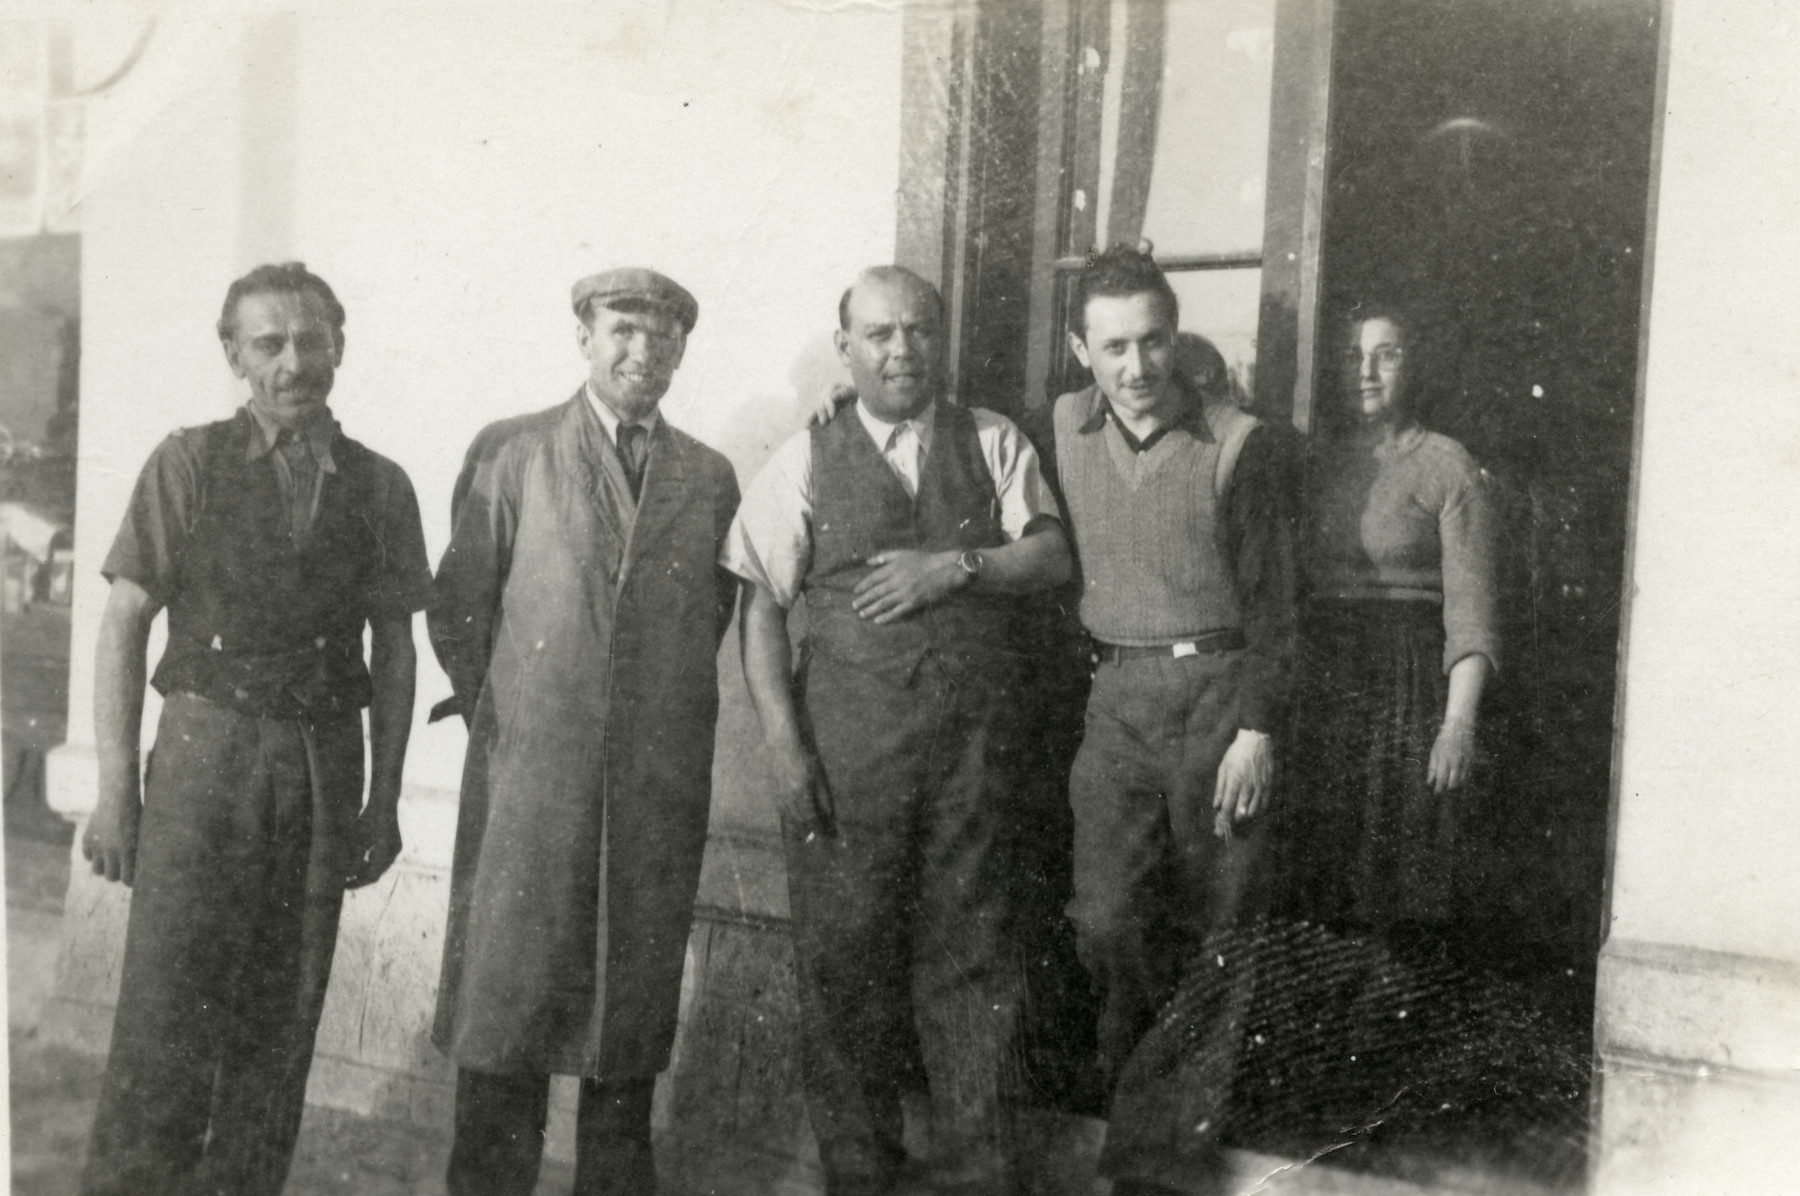 Zoltan Meisels poses with his employees outside his store in Presov; his wife Cecilia is at the back, right.